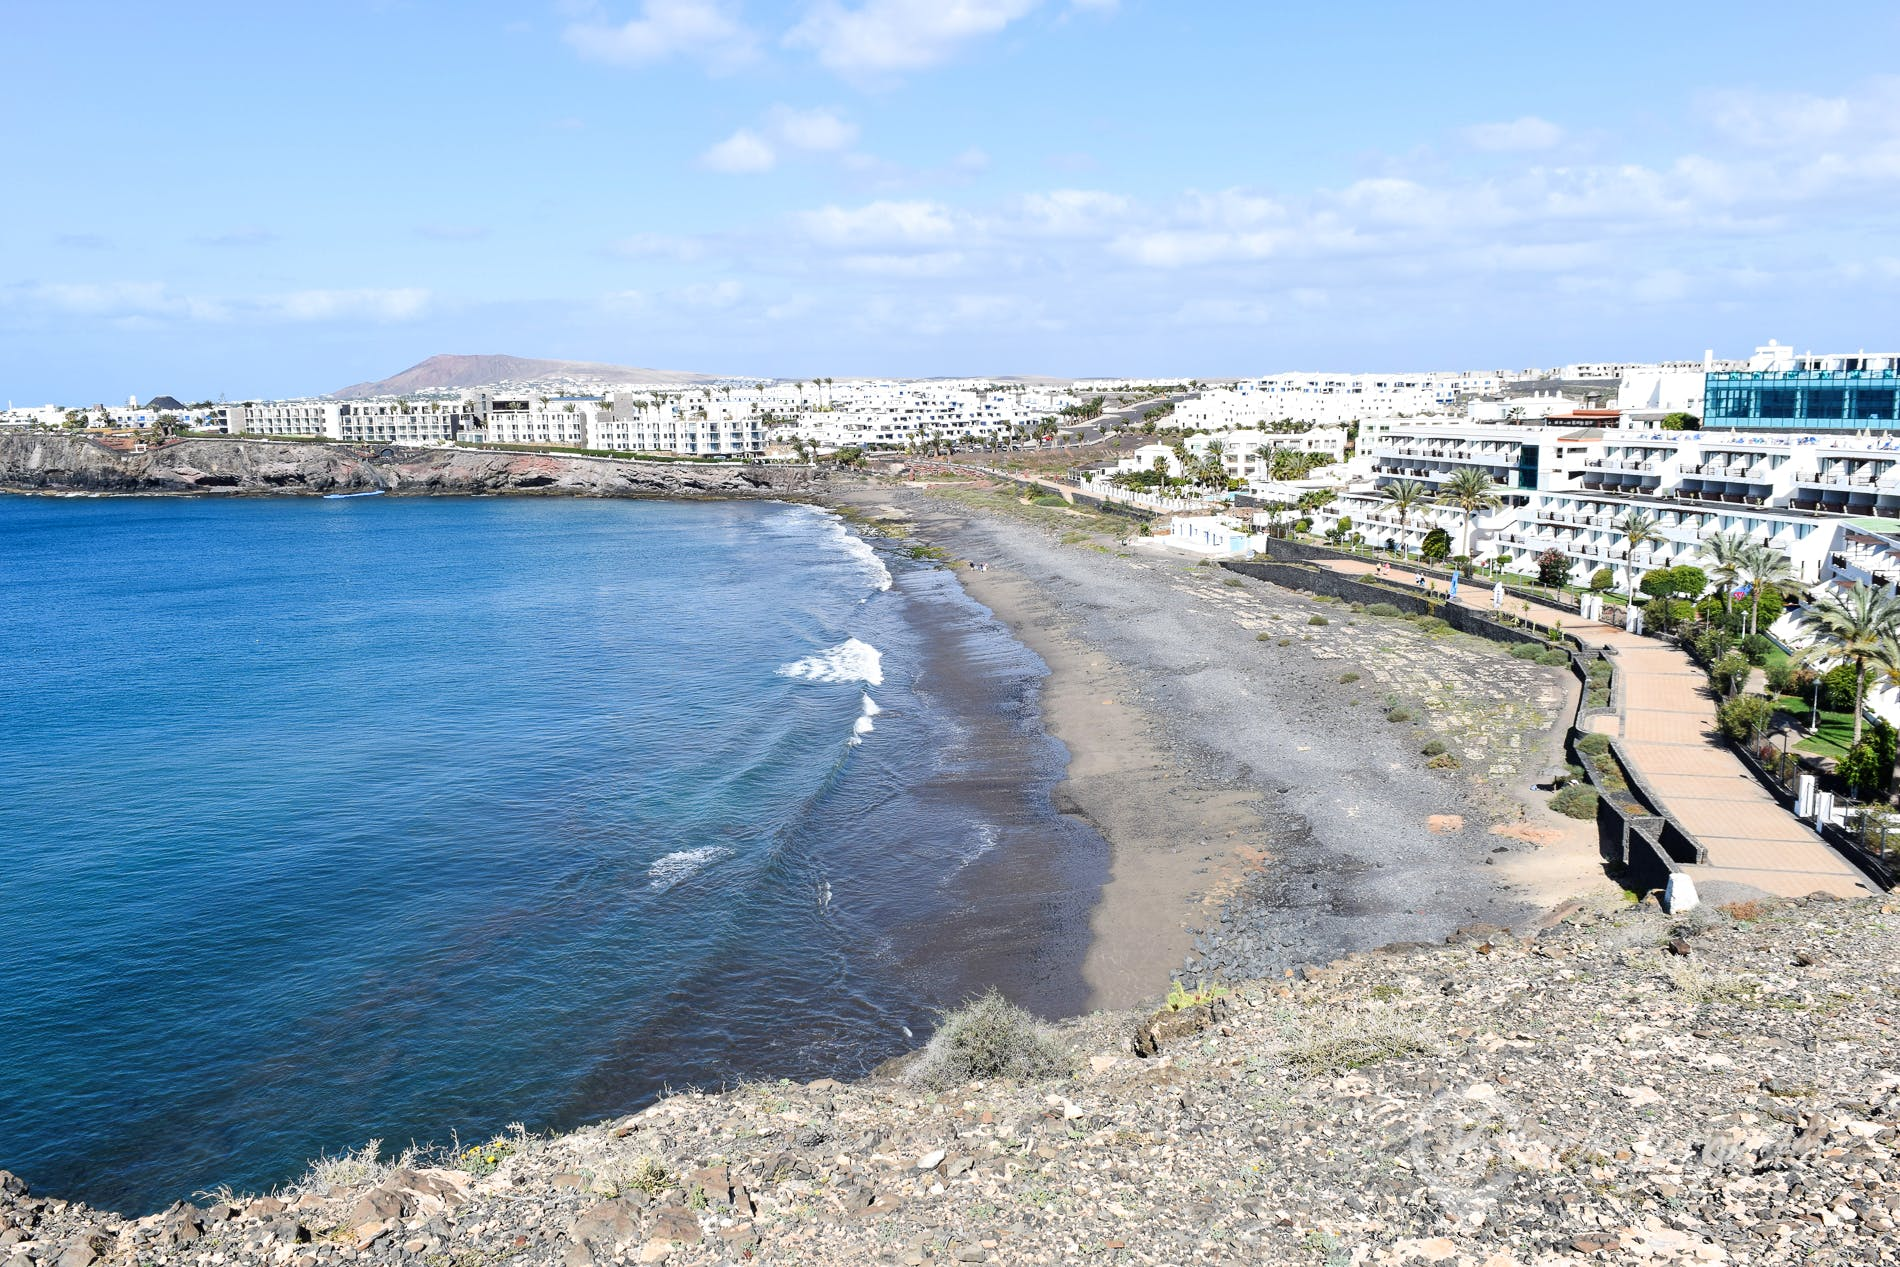 Beach Playa del Afre, Lanzarote, Spain